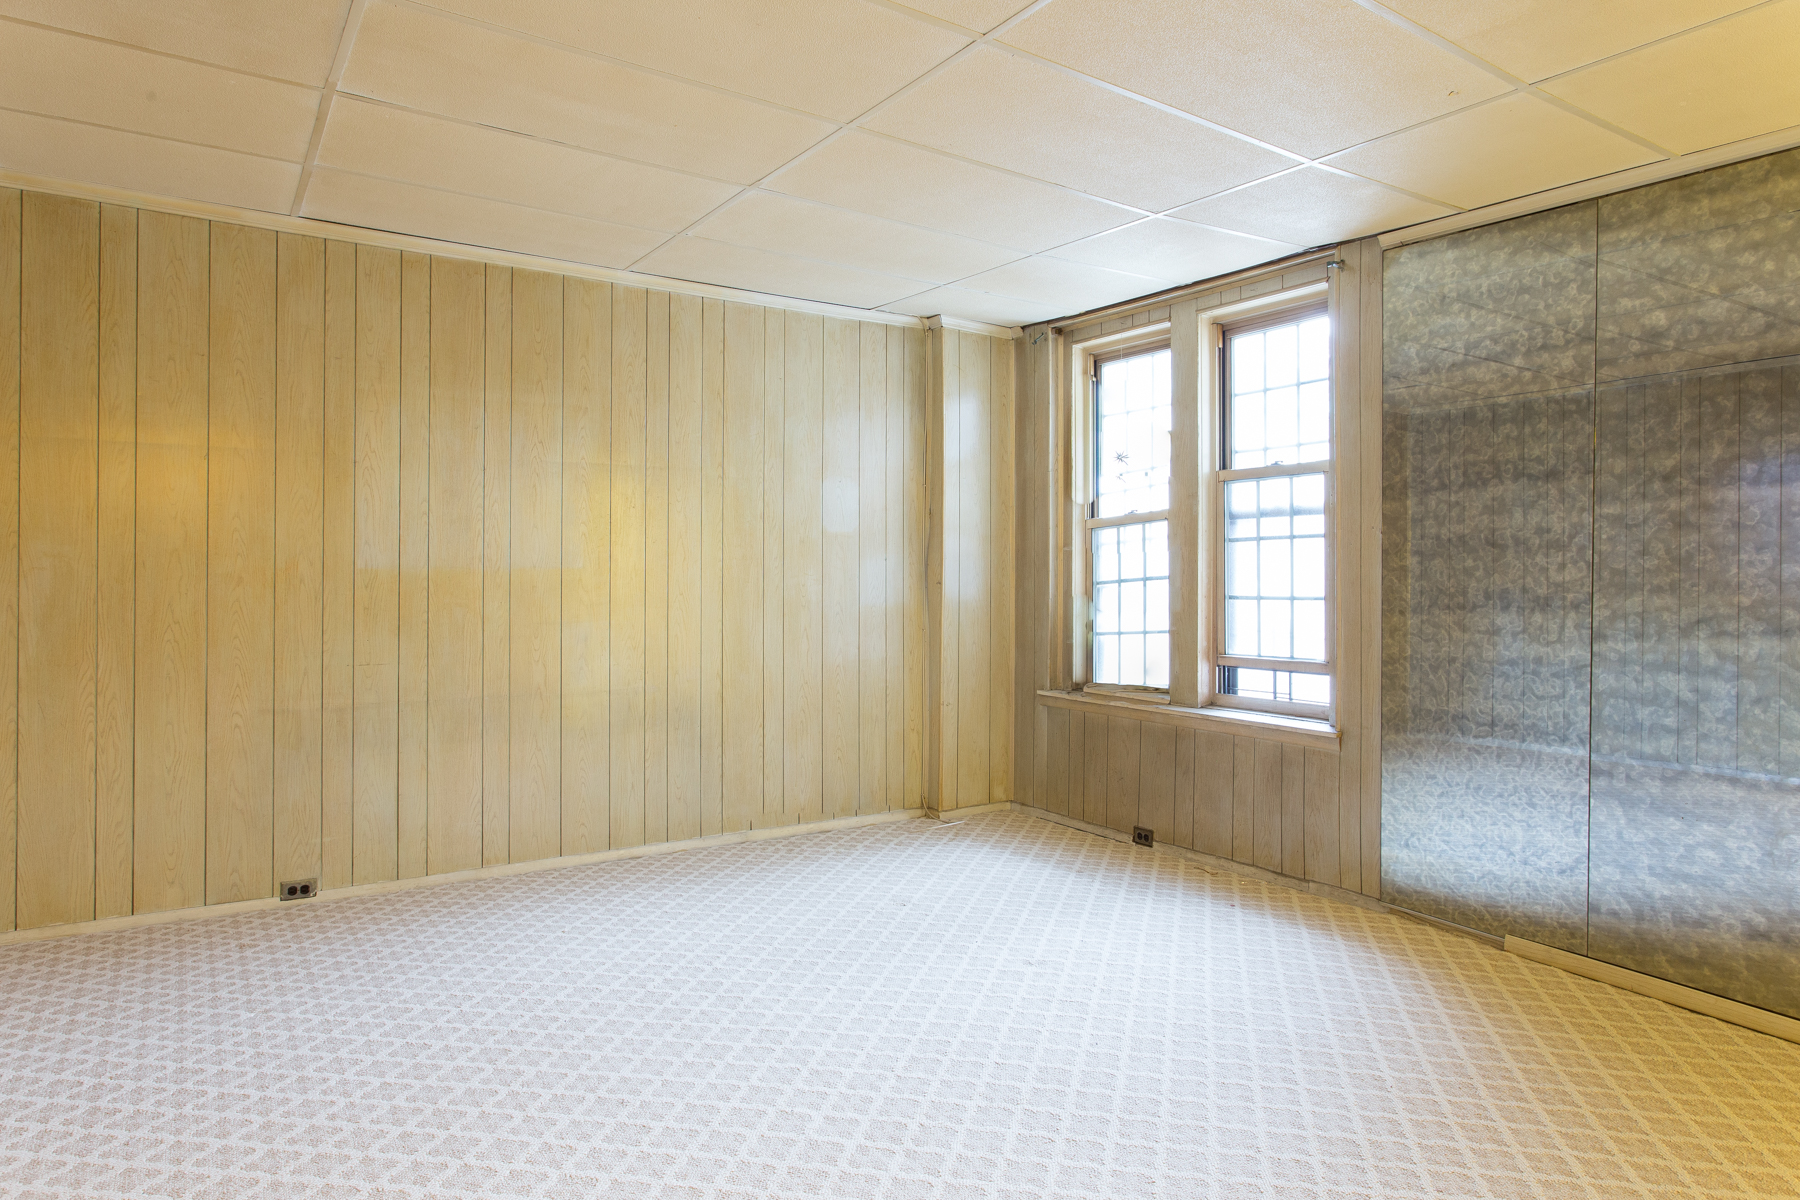 """Additional photo for property listing at """"ONE BEDROOM IN GREAT LOCATION"""" 4 Dartmouth Street, #510, Forest Hills Gardens, Forest Hills, New York 11375 United States"""